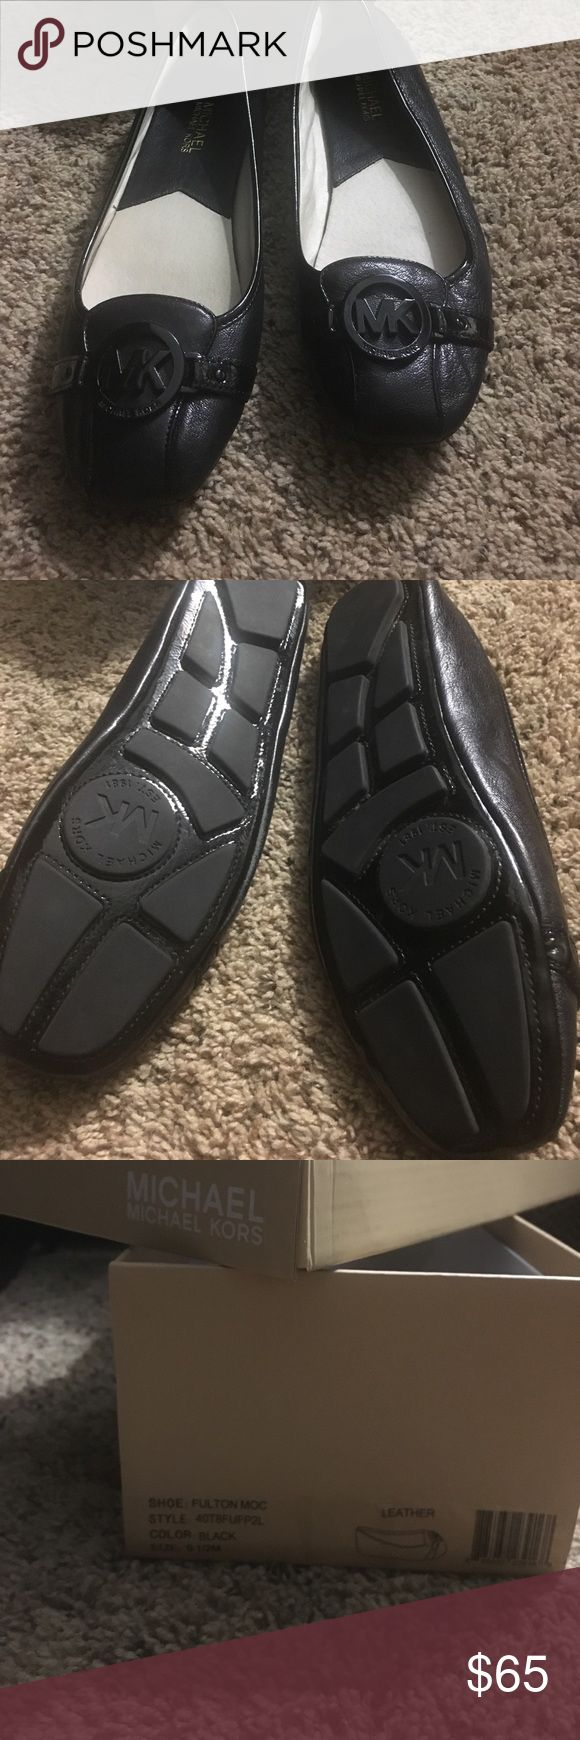 Michael Kors Fulton Flats 9.5M Brand New never worn MK black Fulton flats MICHAEL Michael Kors Shoes Flats & Loafers